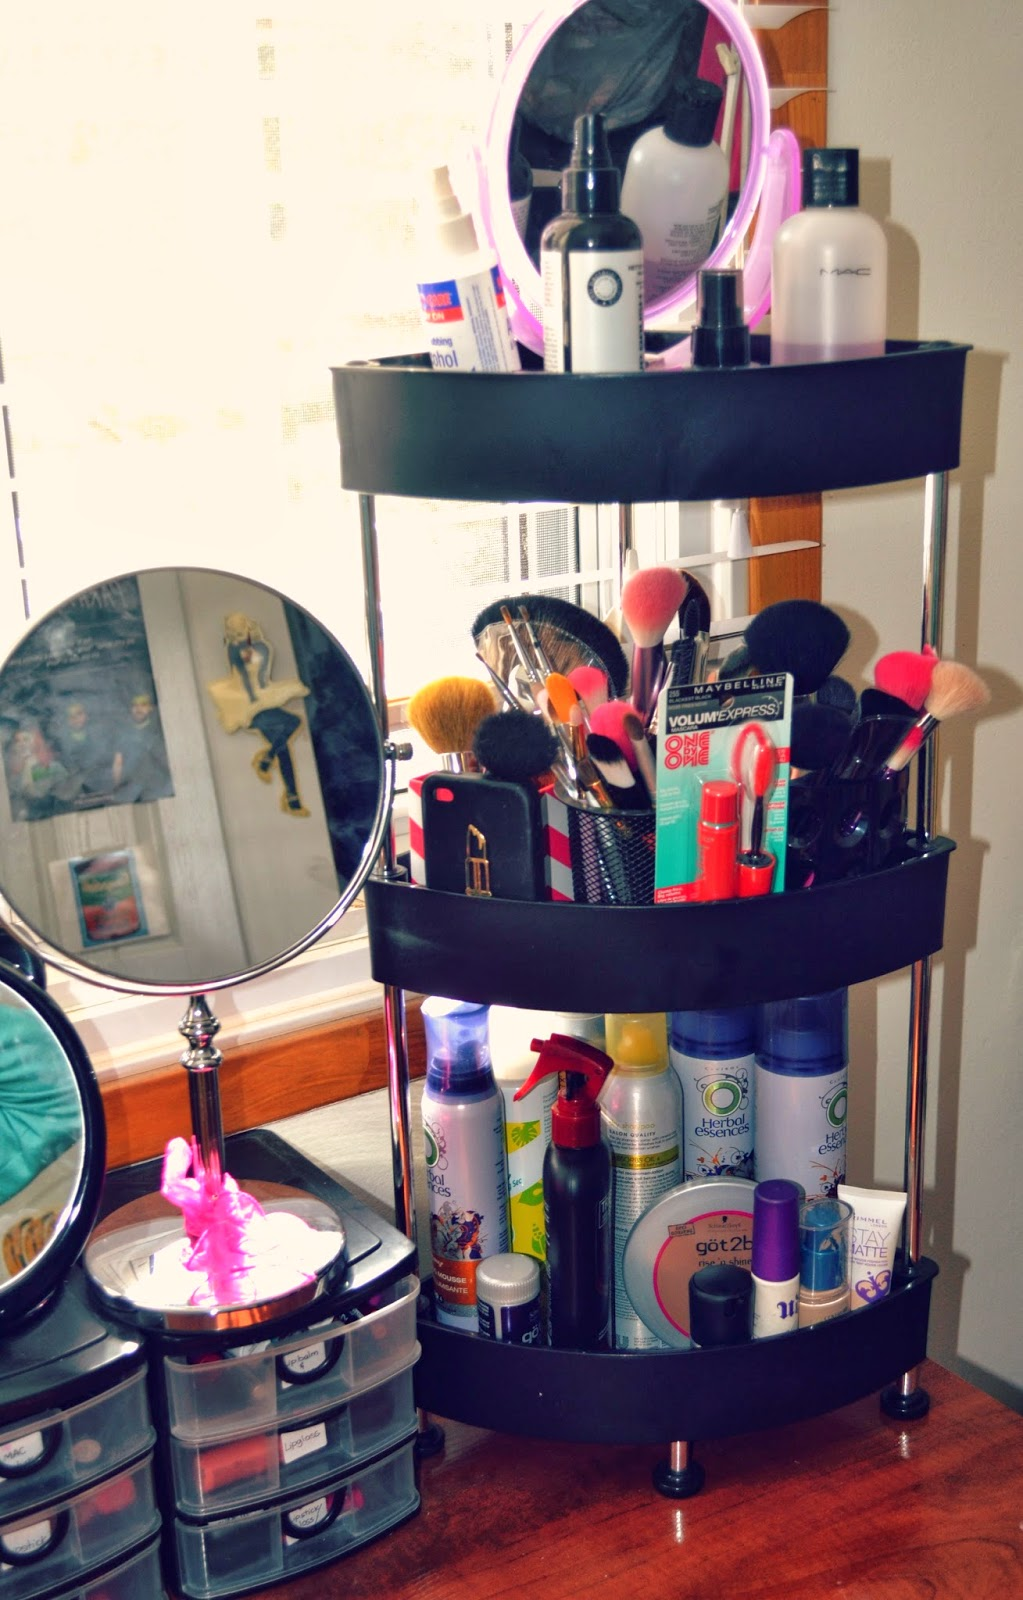 Superior Here Is A More In Depth Look At Whatu0027s Inside My Makeup Containers!